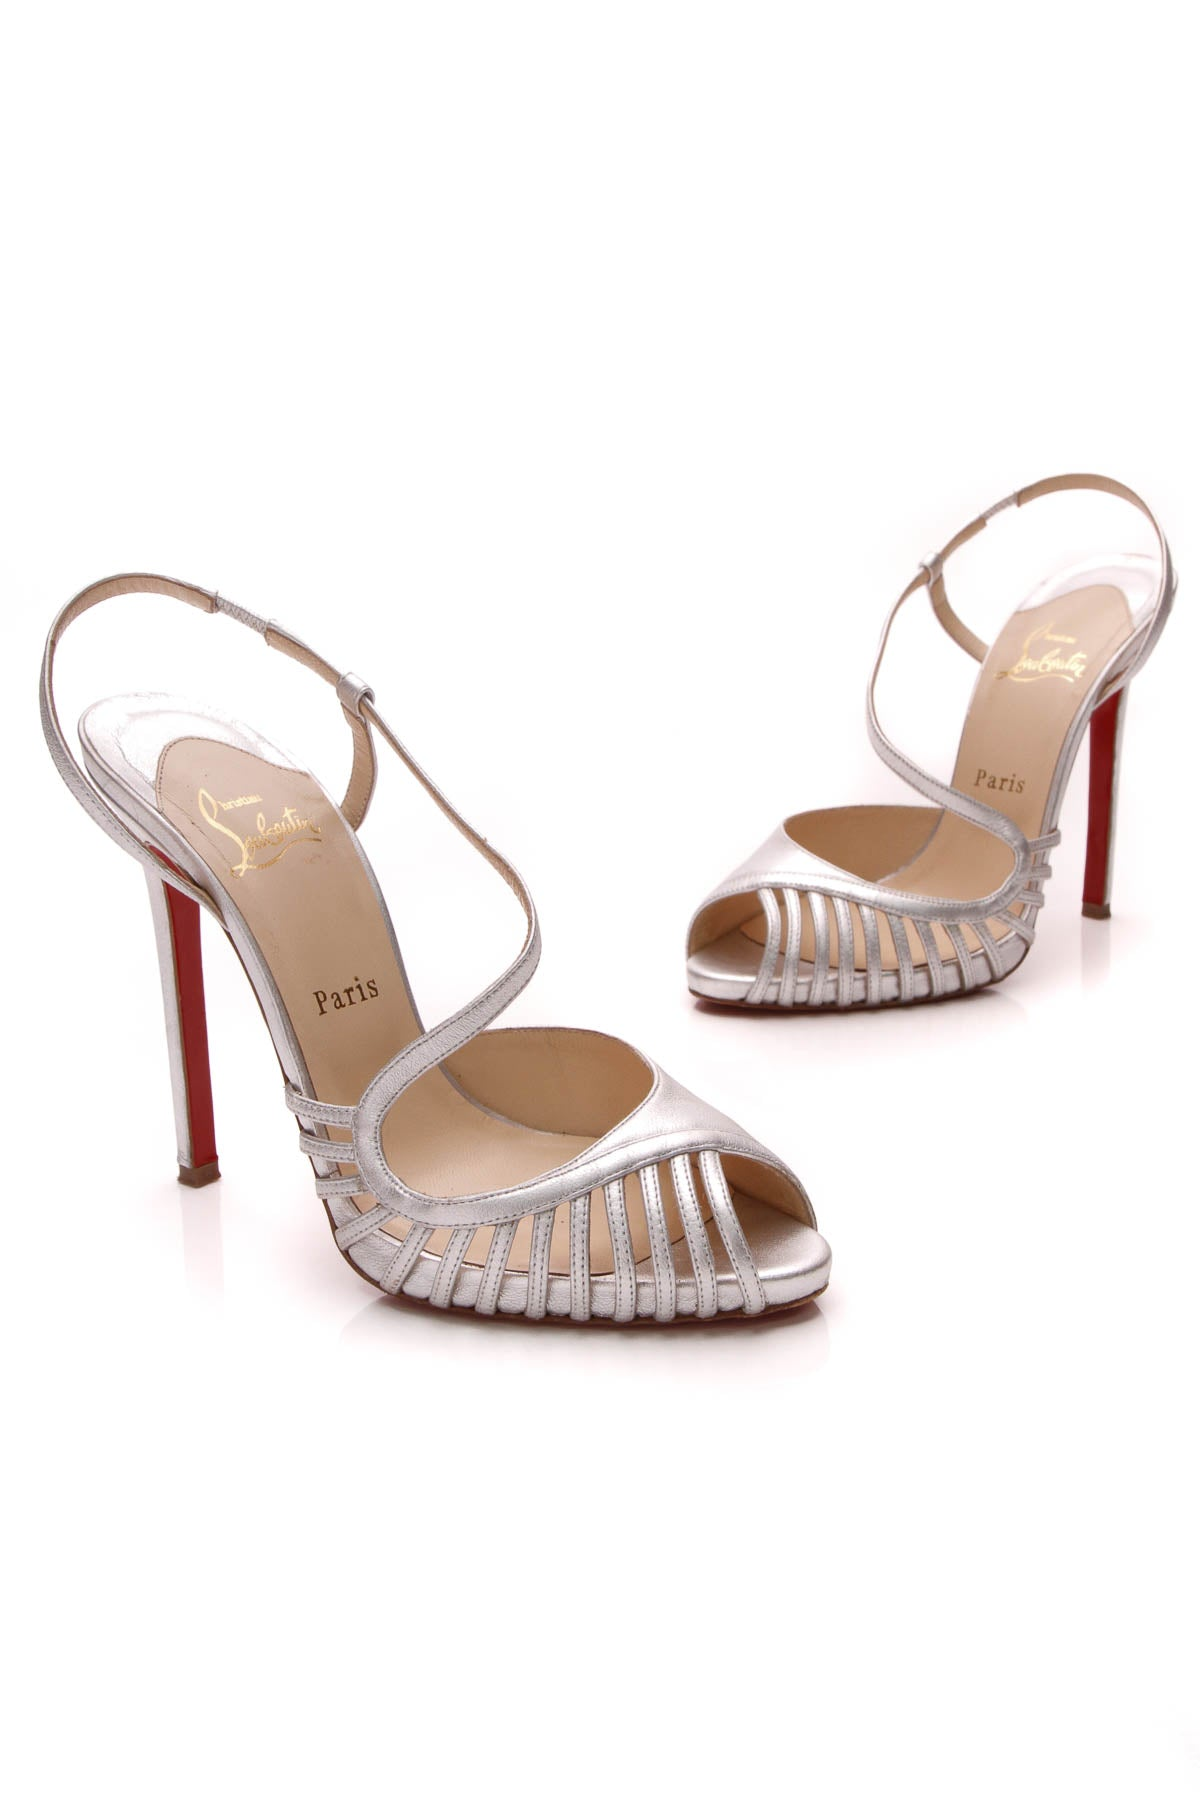 buy popular a2af5 78227 Christian Louboutin Caged Strappy Heels - Silver Size 39 ...